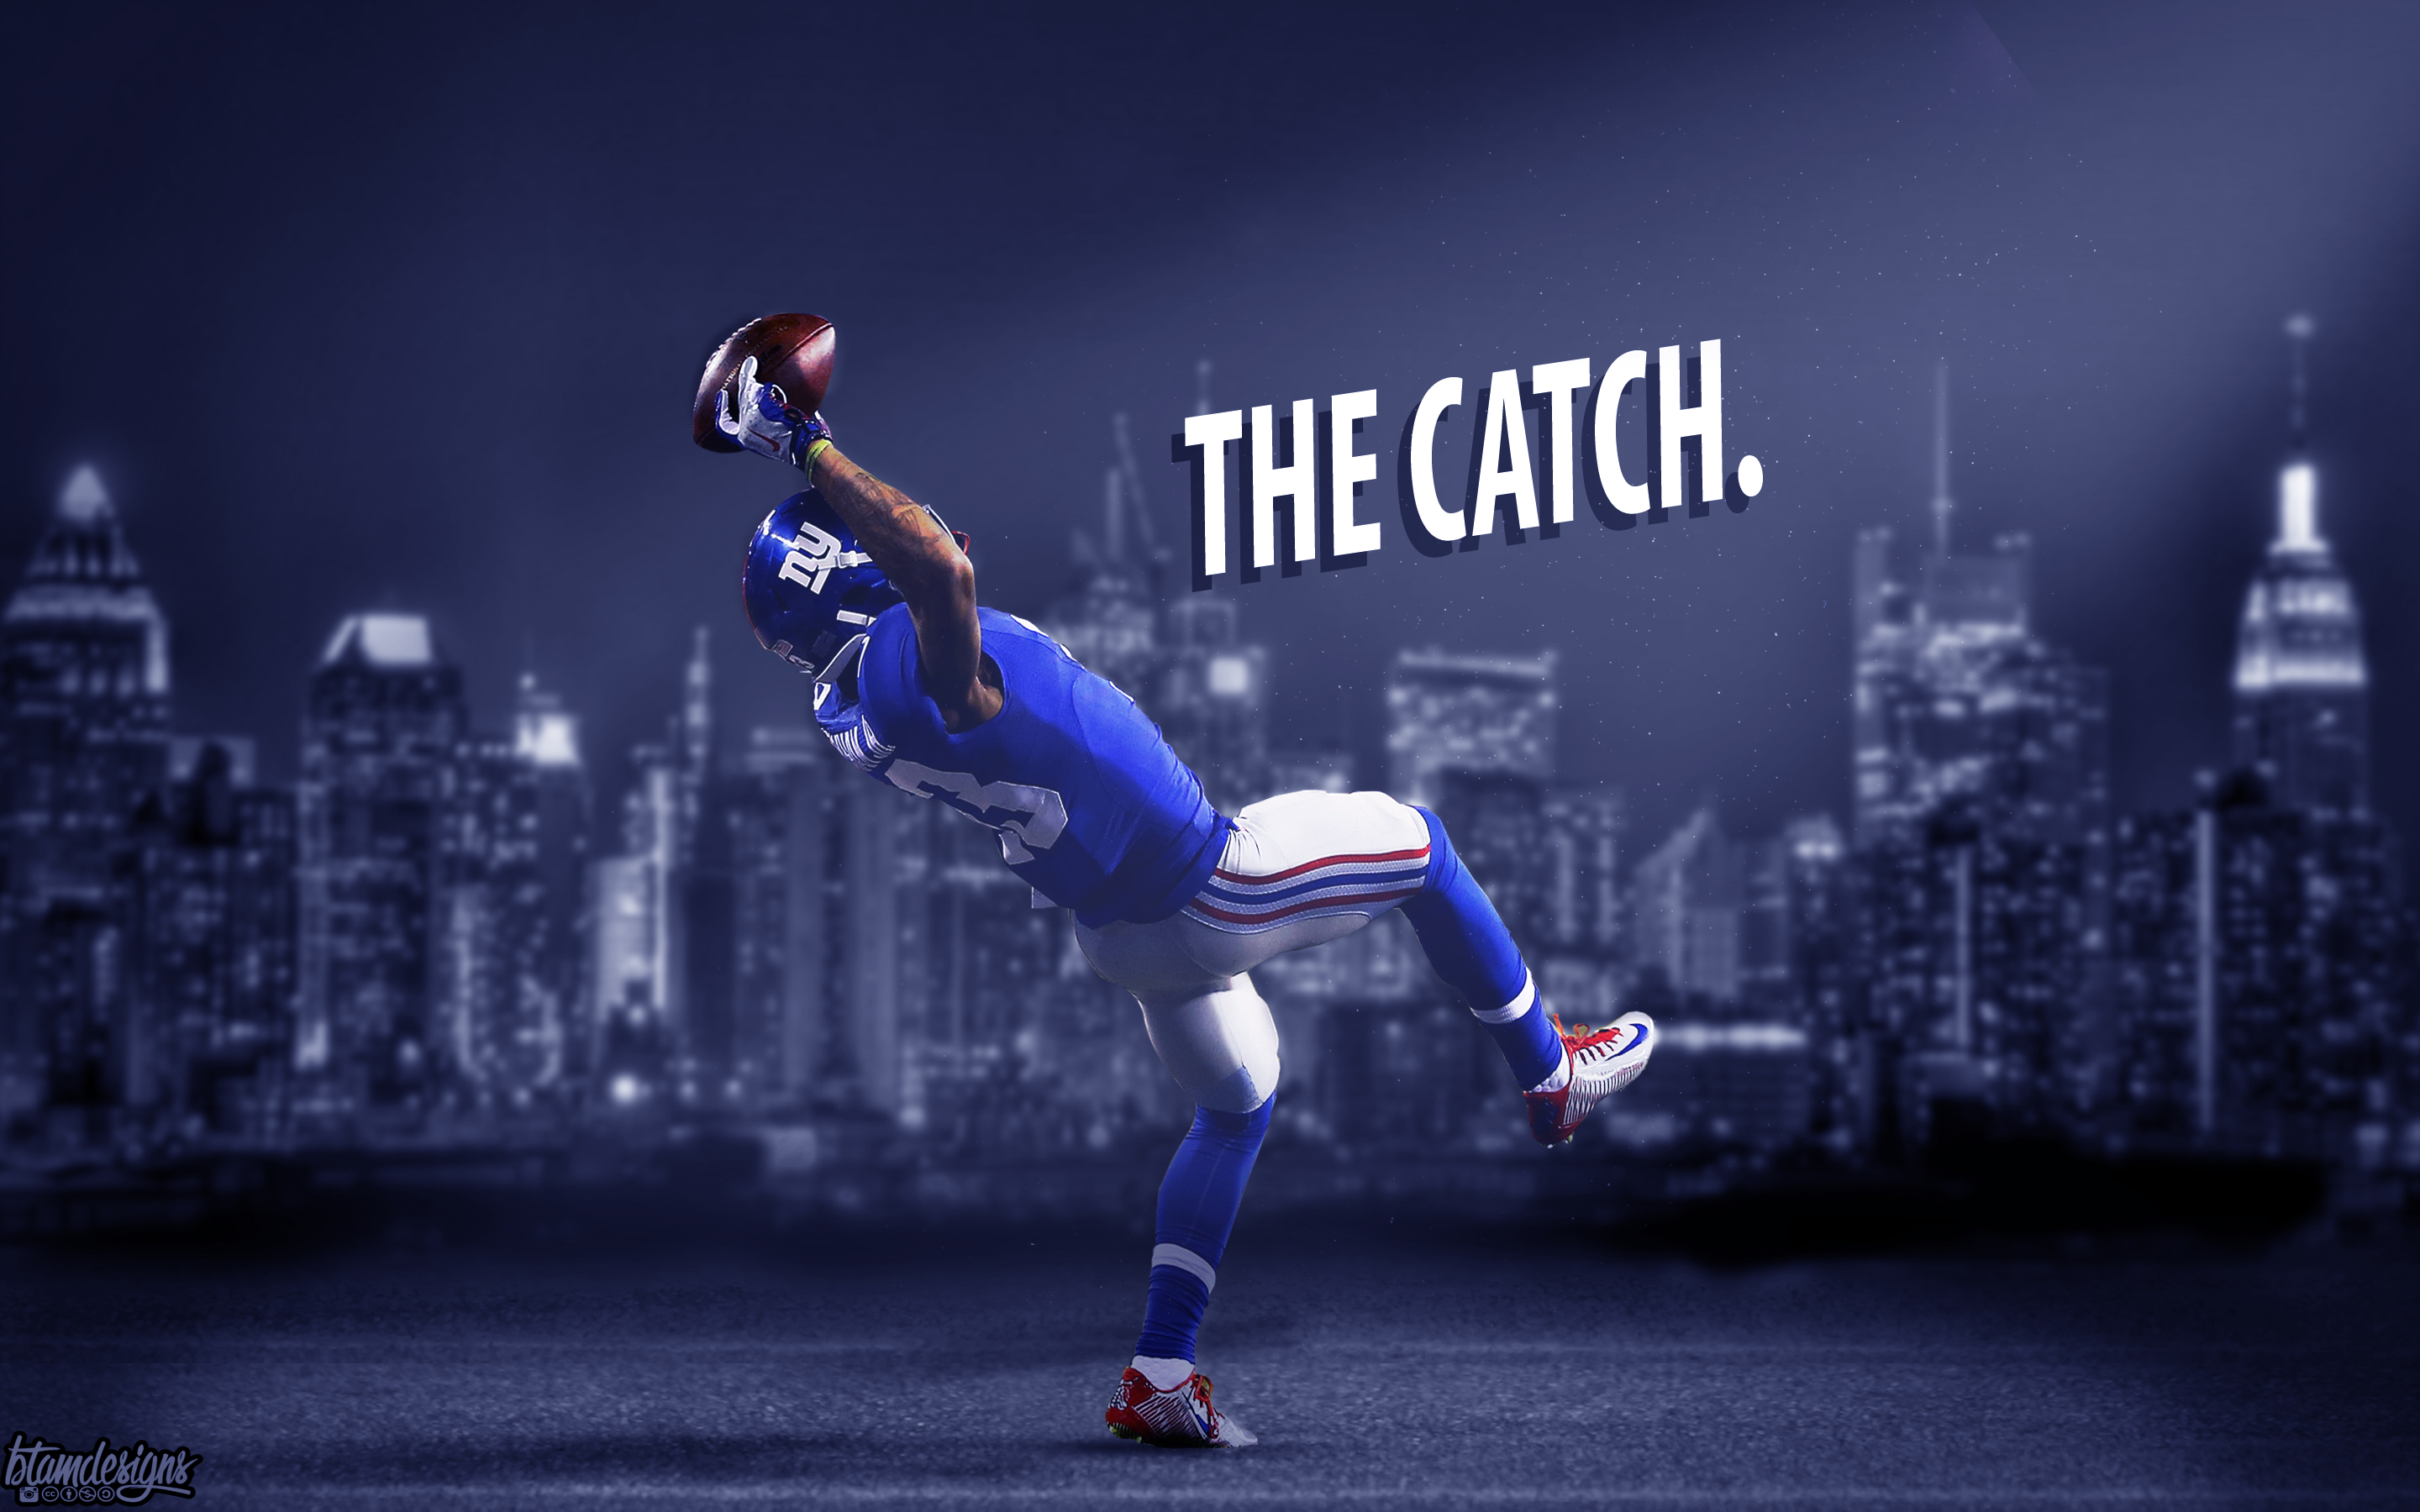 Odell Beckham jr Wallpaper Odell Beckham jr Wallpaper 2880x1800